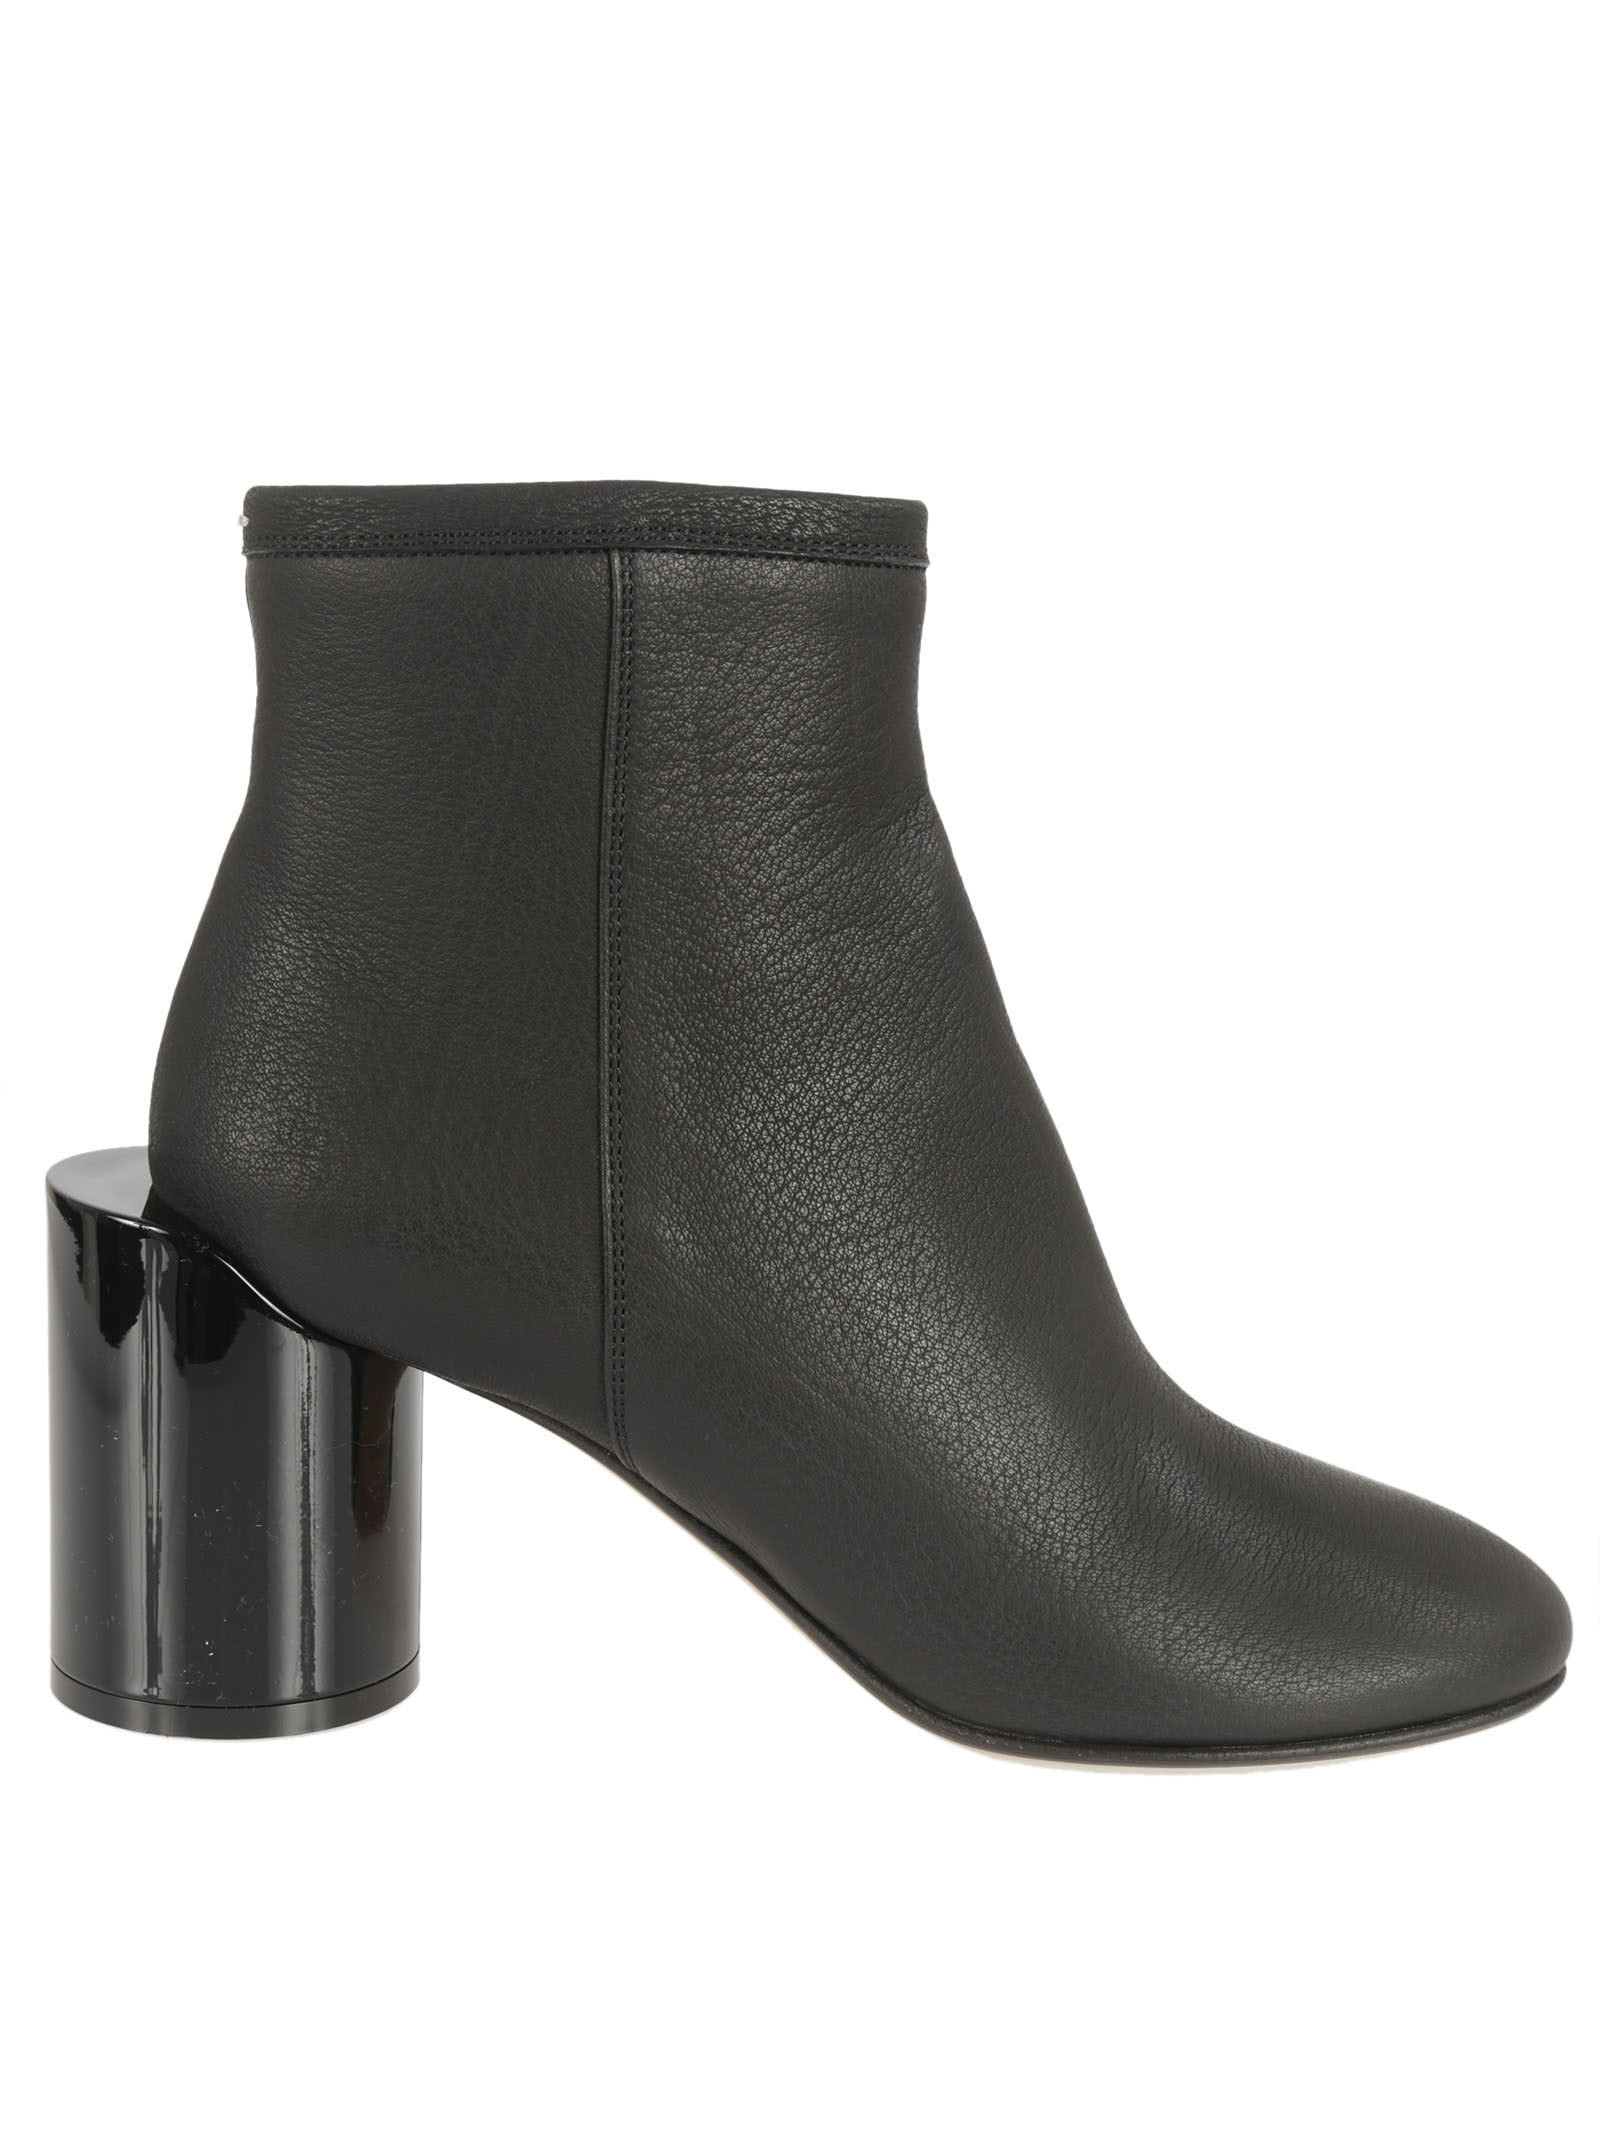 Large Heel Ankle Boots from Maison Margiela: Black Large Heel Ankle Boots with cylindrical heel, side zip closure and round toe line